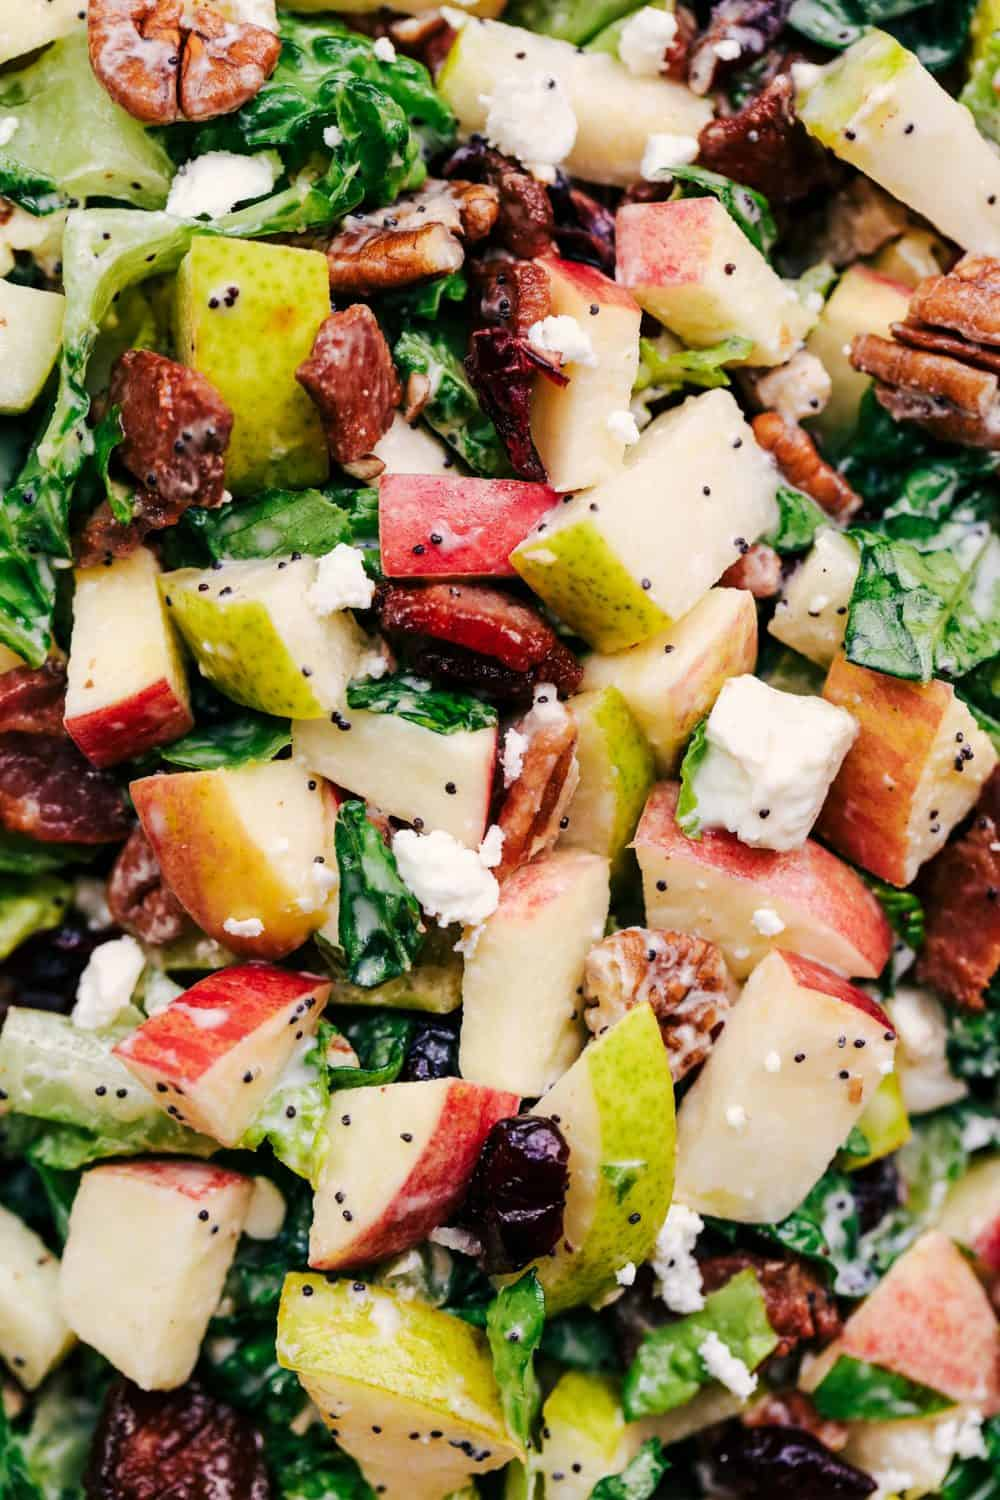 True Foods Mediterranean Salad Recipe